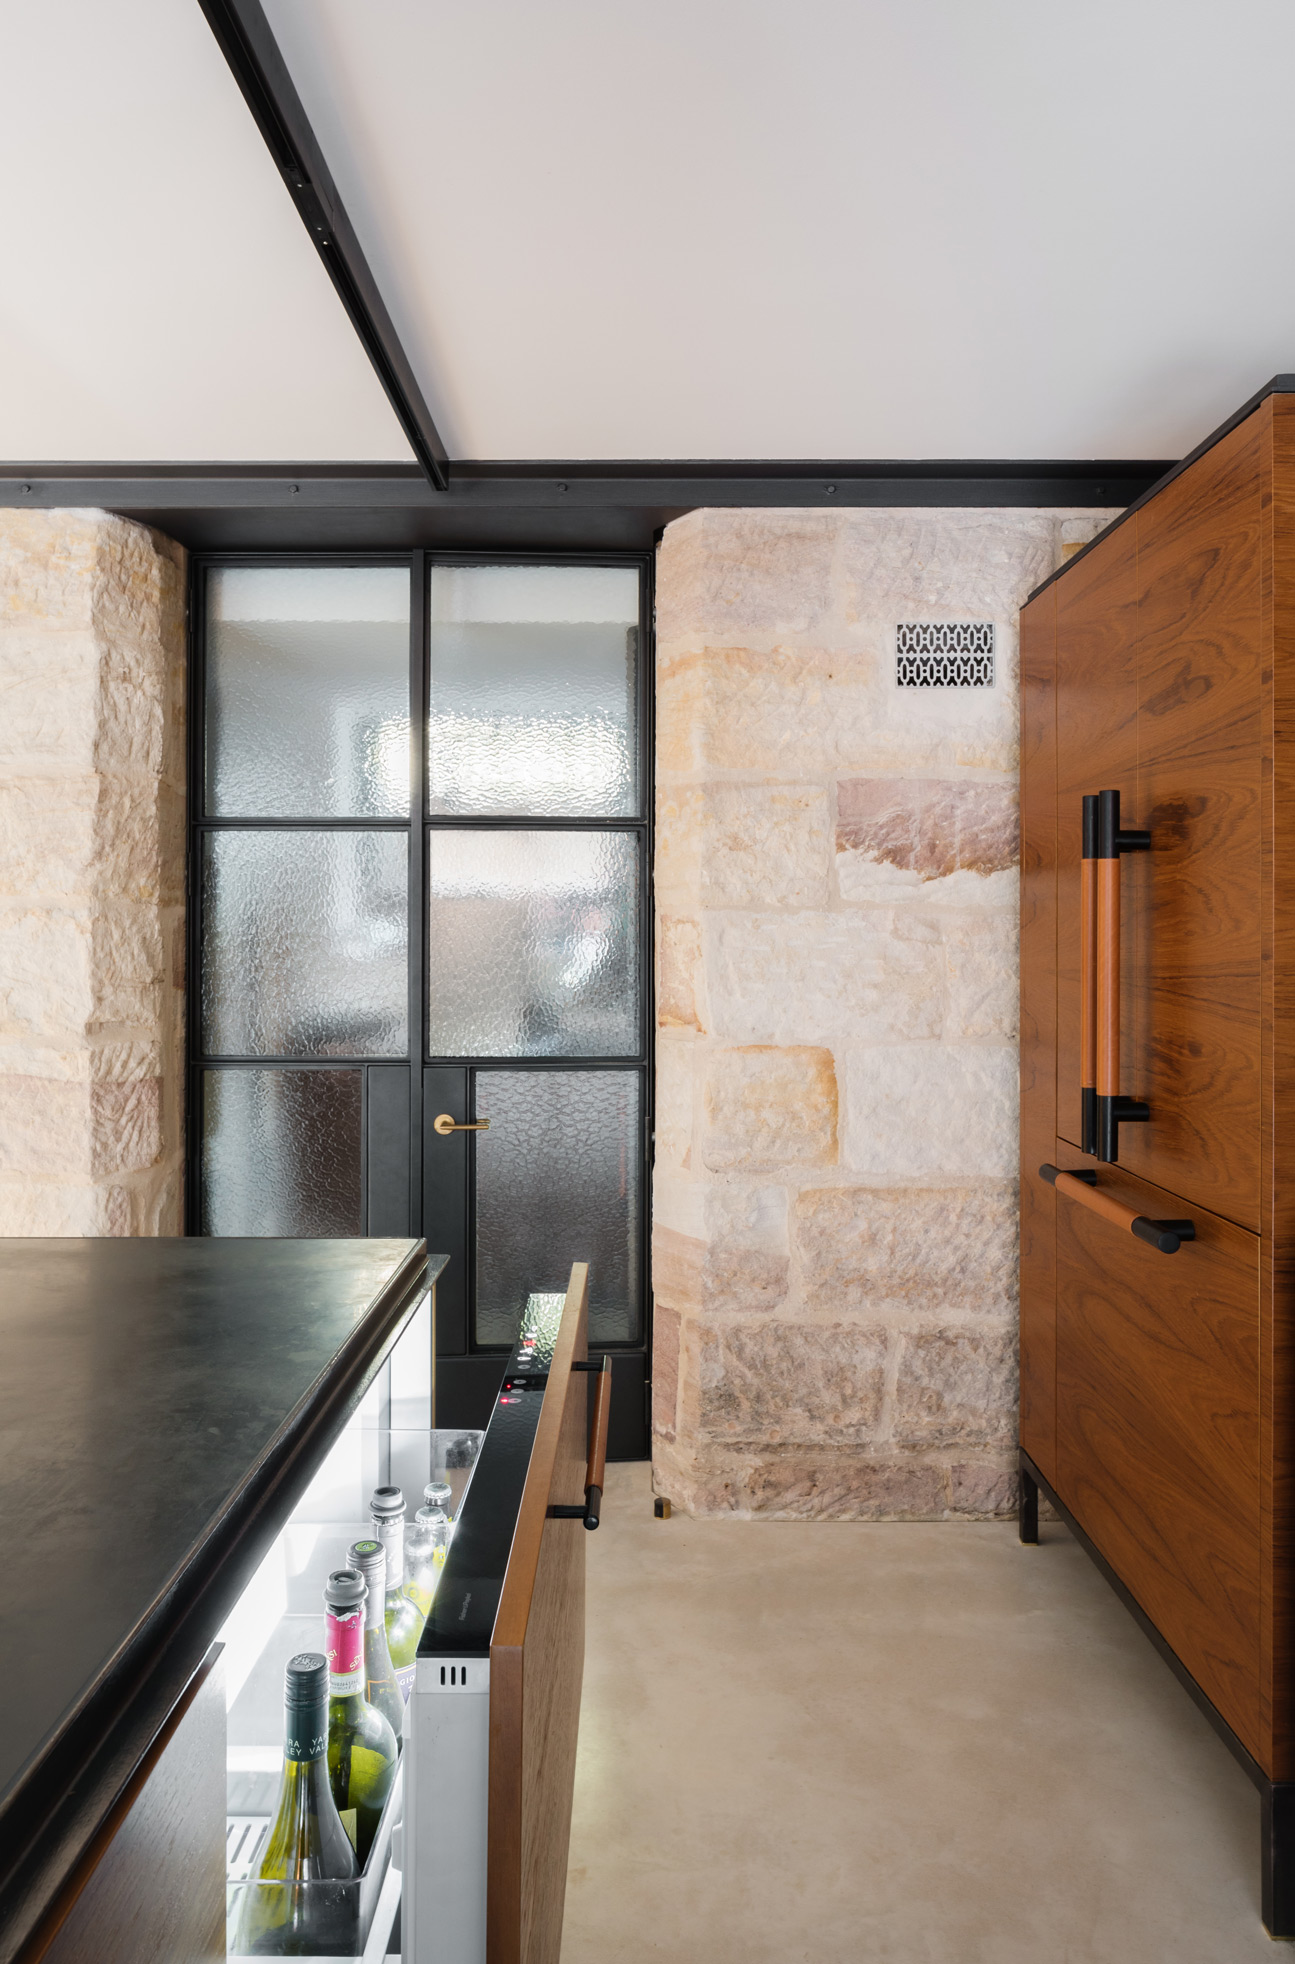 Slate Benchtops With Steel Angle Edges, Thin Steel Shelving And Elegant Teak Veneer Cabinetry Reference The Home's Overall In